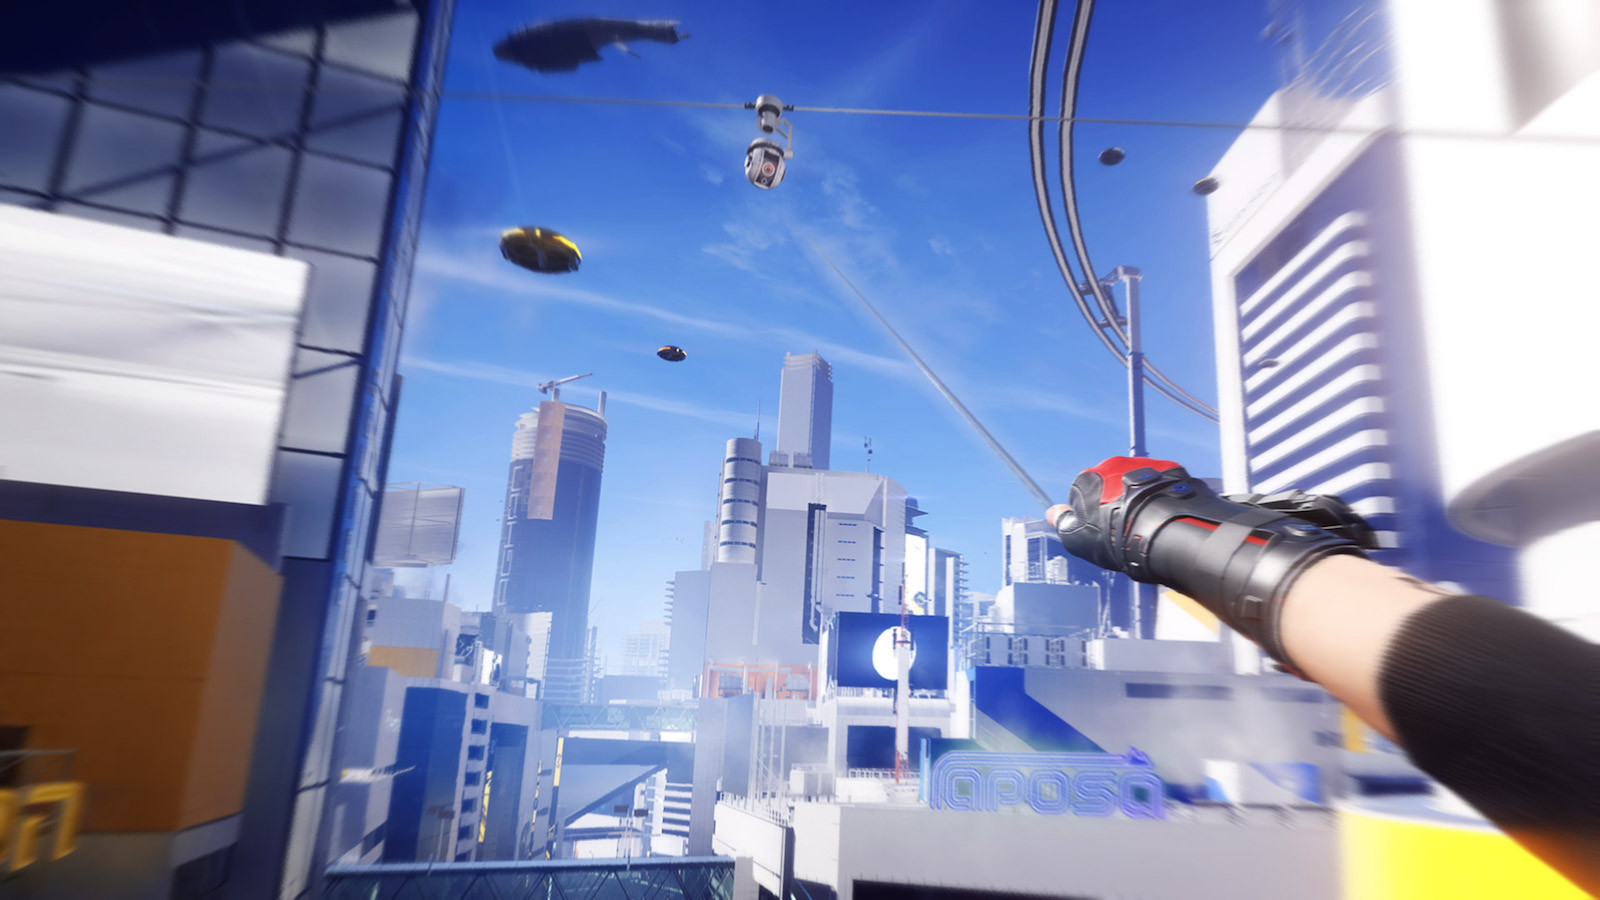 Mirror's Edge Catalyst playstation, xbox, игры, компьютерные игры